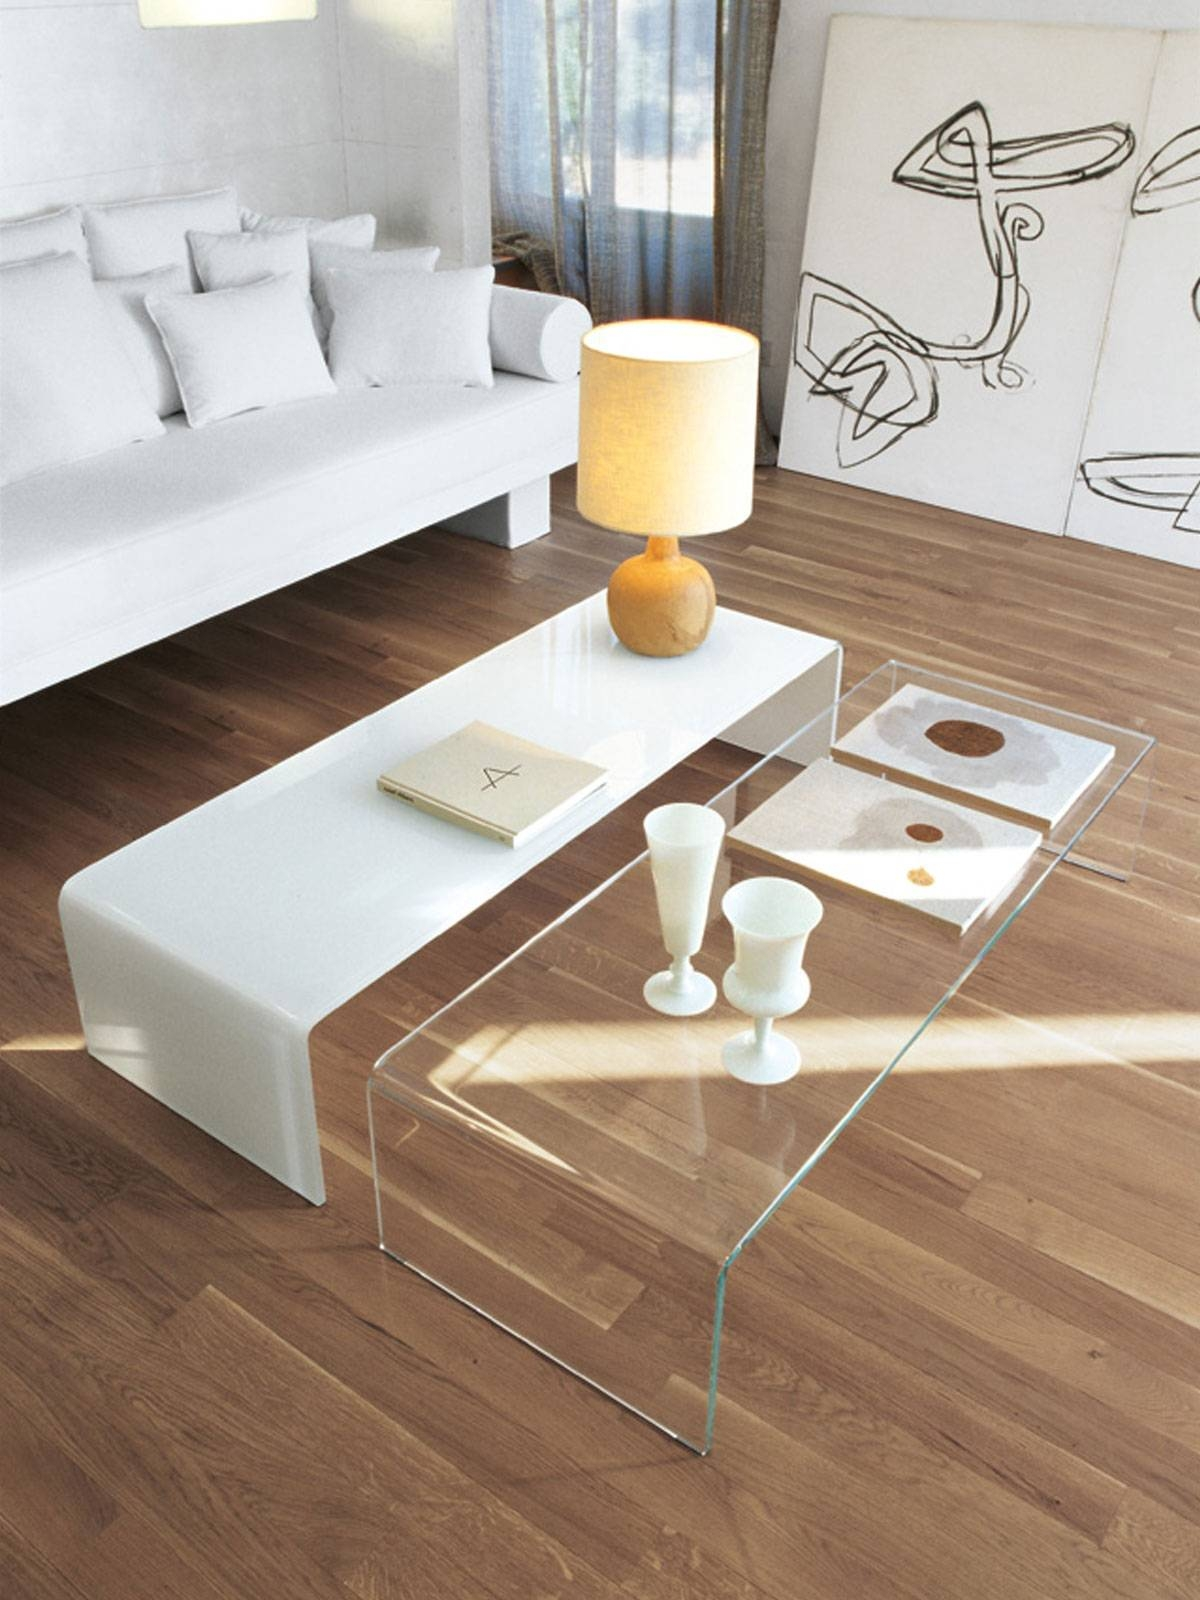 Bridge Curved Glass Coffee Table - To Buy Online - Glassdomain in Curved Glass Coffee Tables (Image 4 of 30)